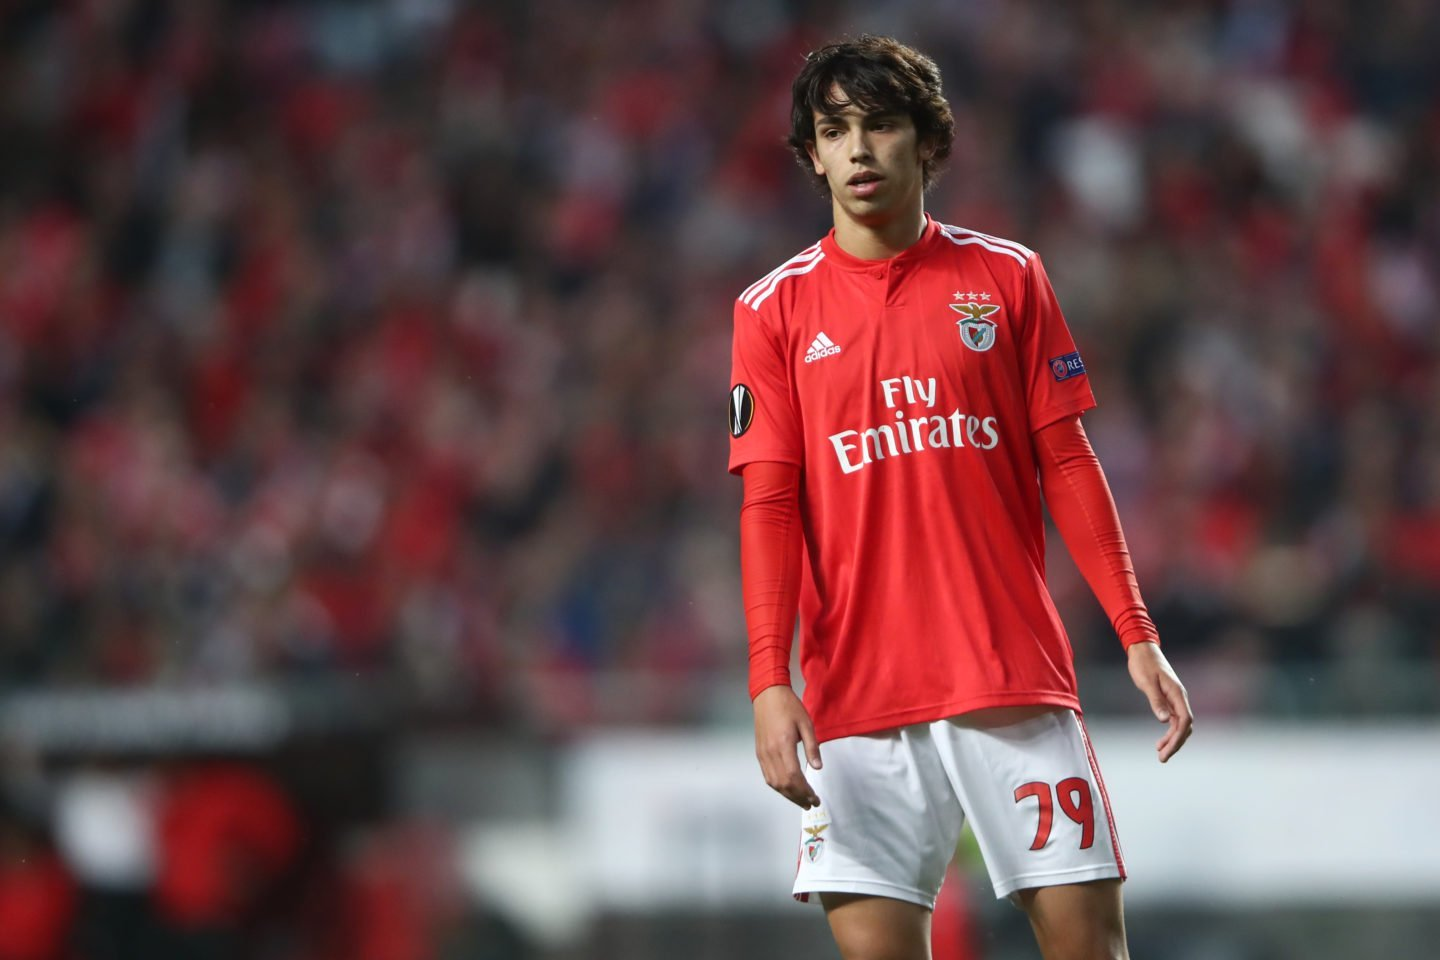 benfica confirm 126m offer from atletico madrid for portuguese teenager joao felix